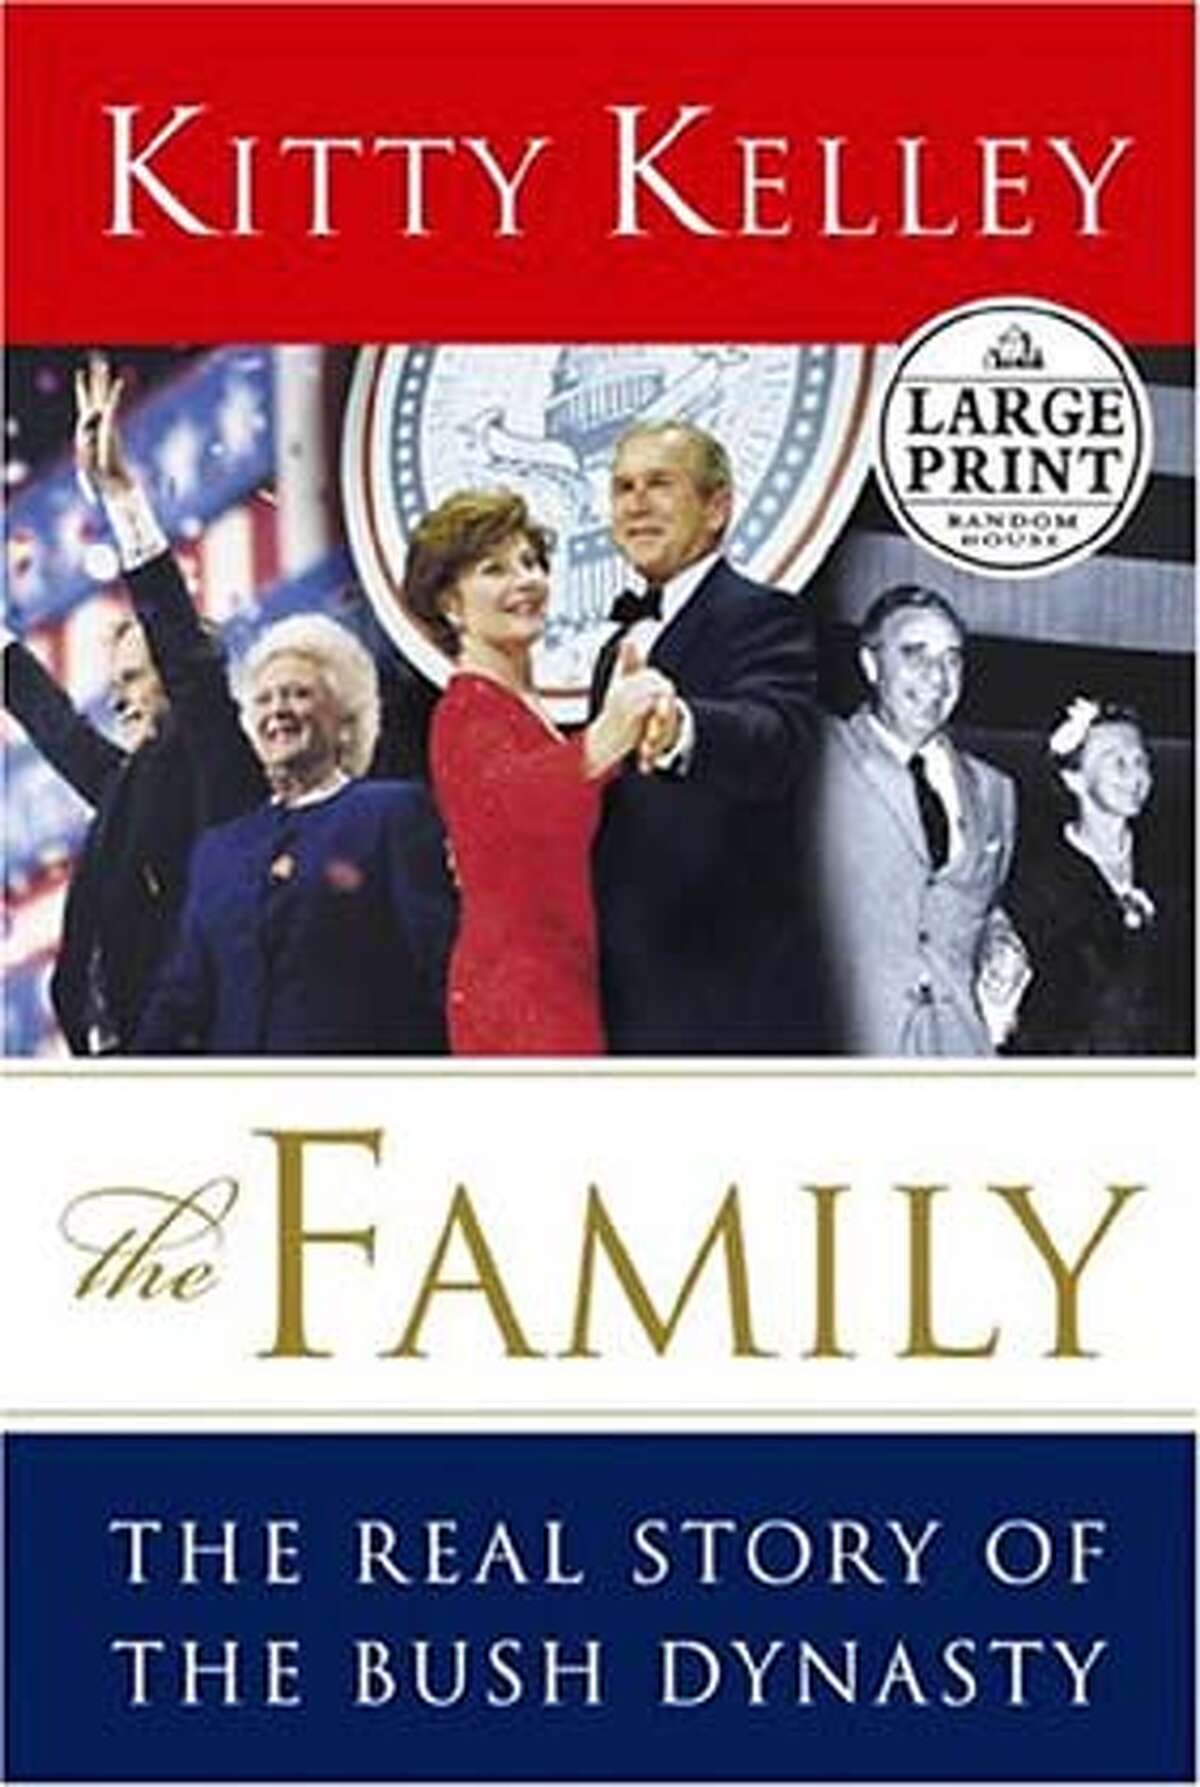 fallbooks29j.JPG Book cover of THE FAMILY by Kitty Kelley HANDOUT BookReview#BookReview#Chronicle#08-29-2004#ALL#Advance#M3#0422293490